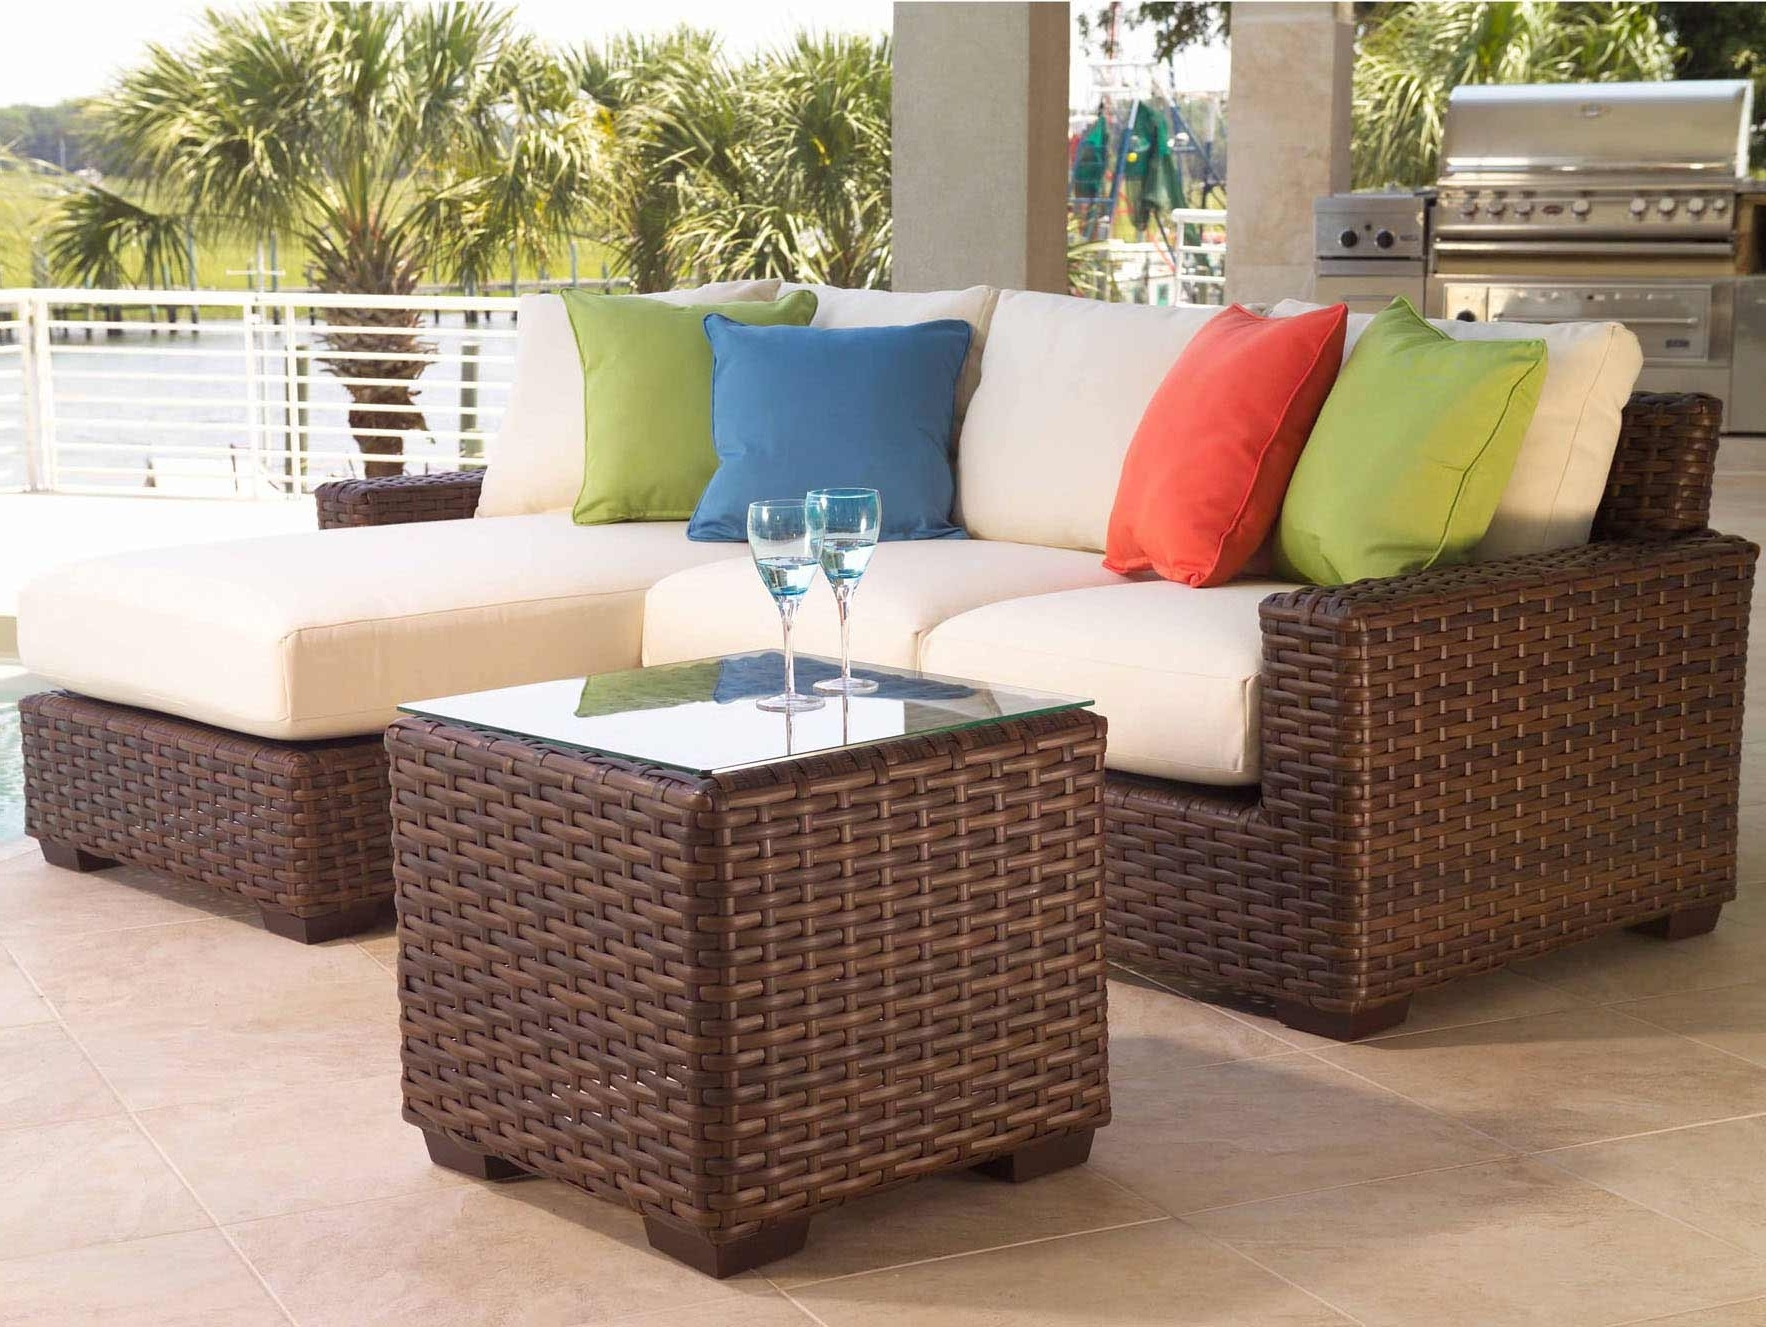 Outdoor Furniture Sets Ideas (View 8 of 15)